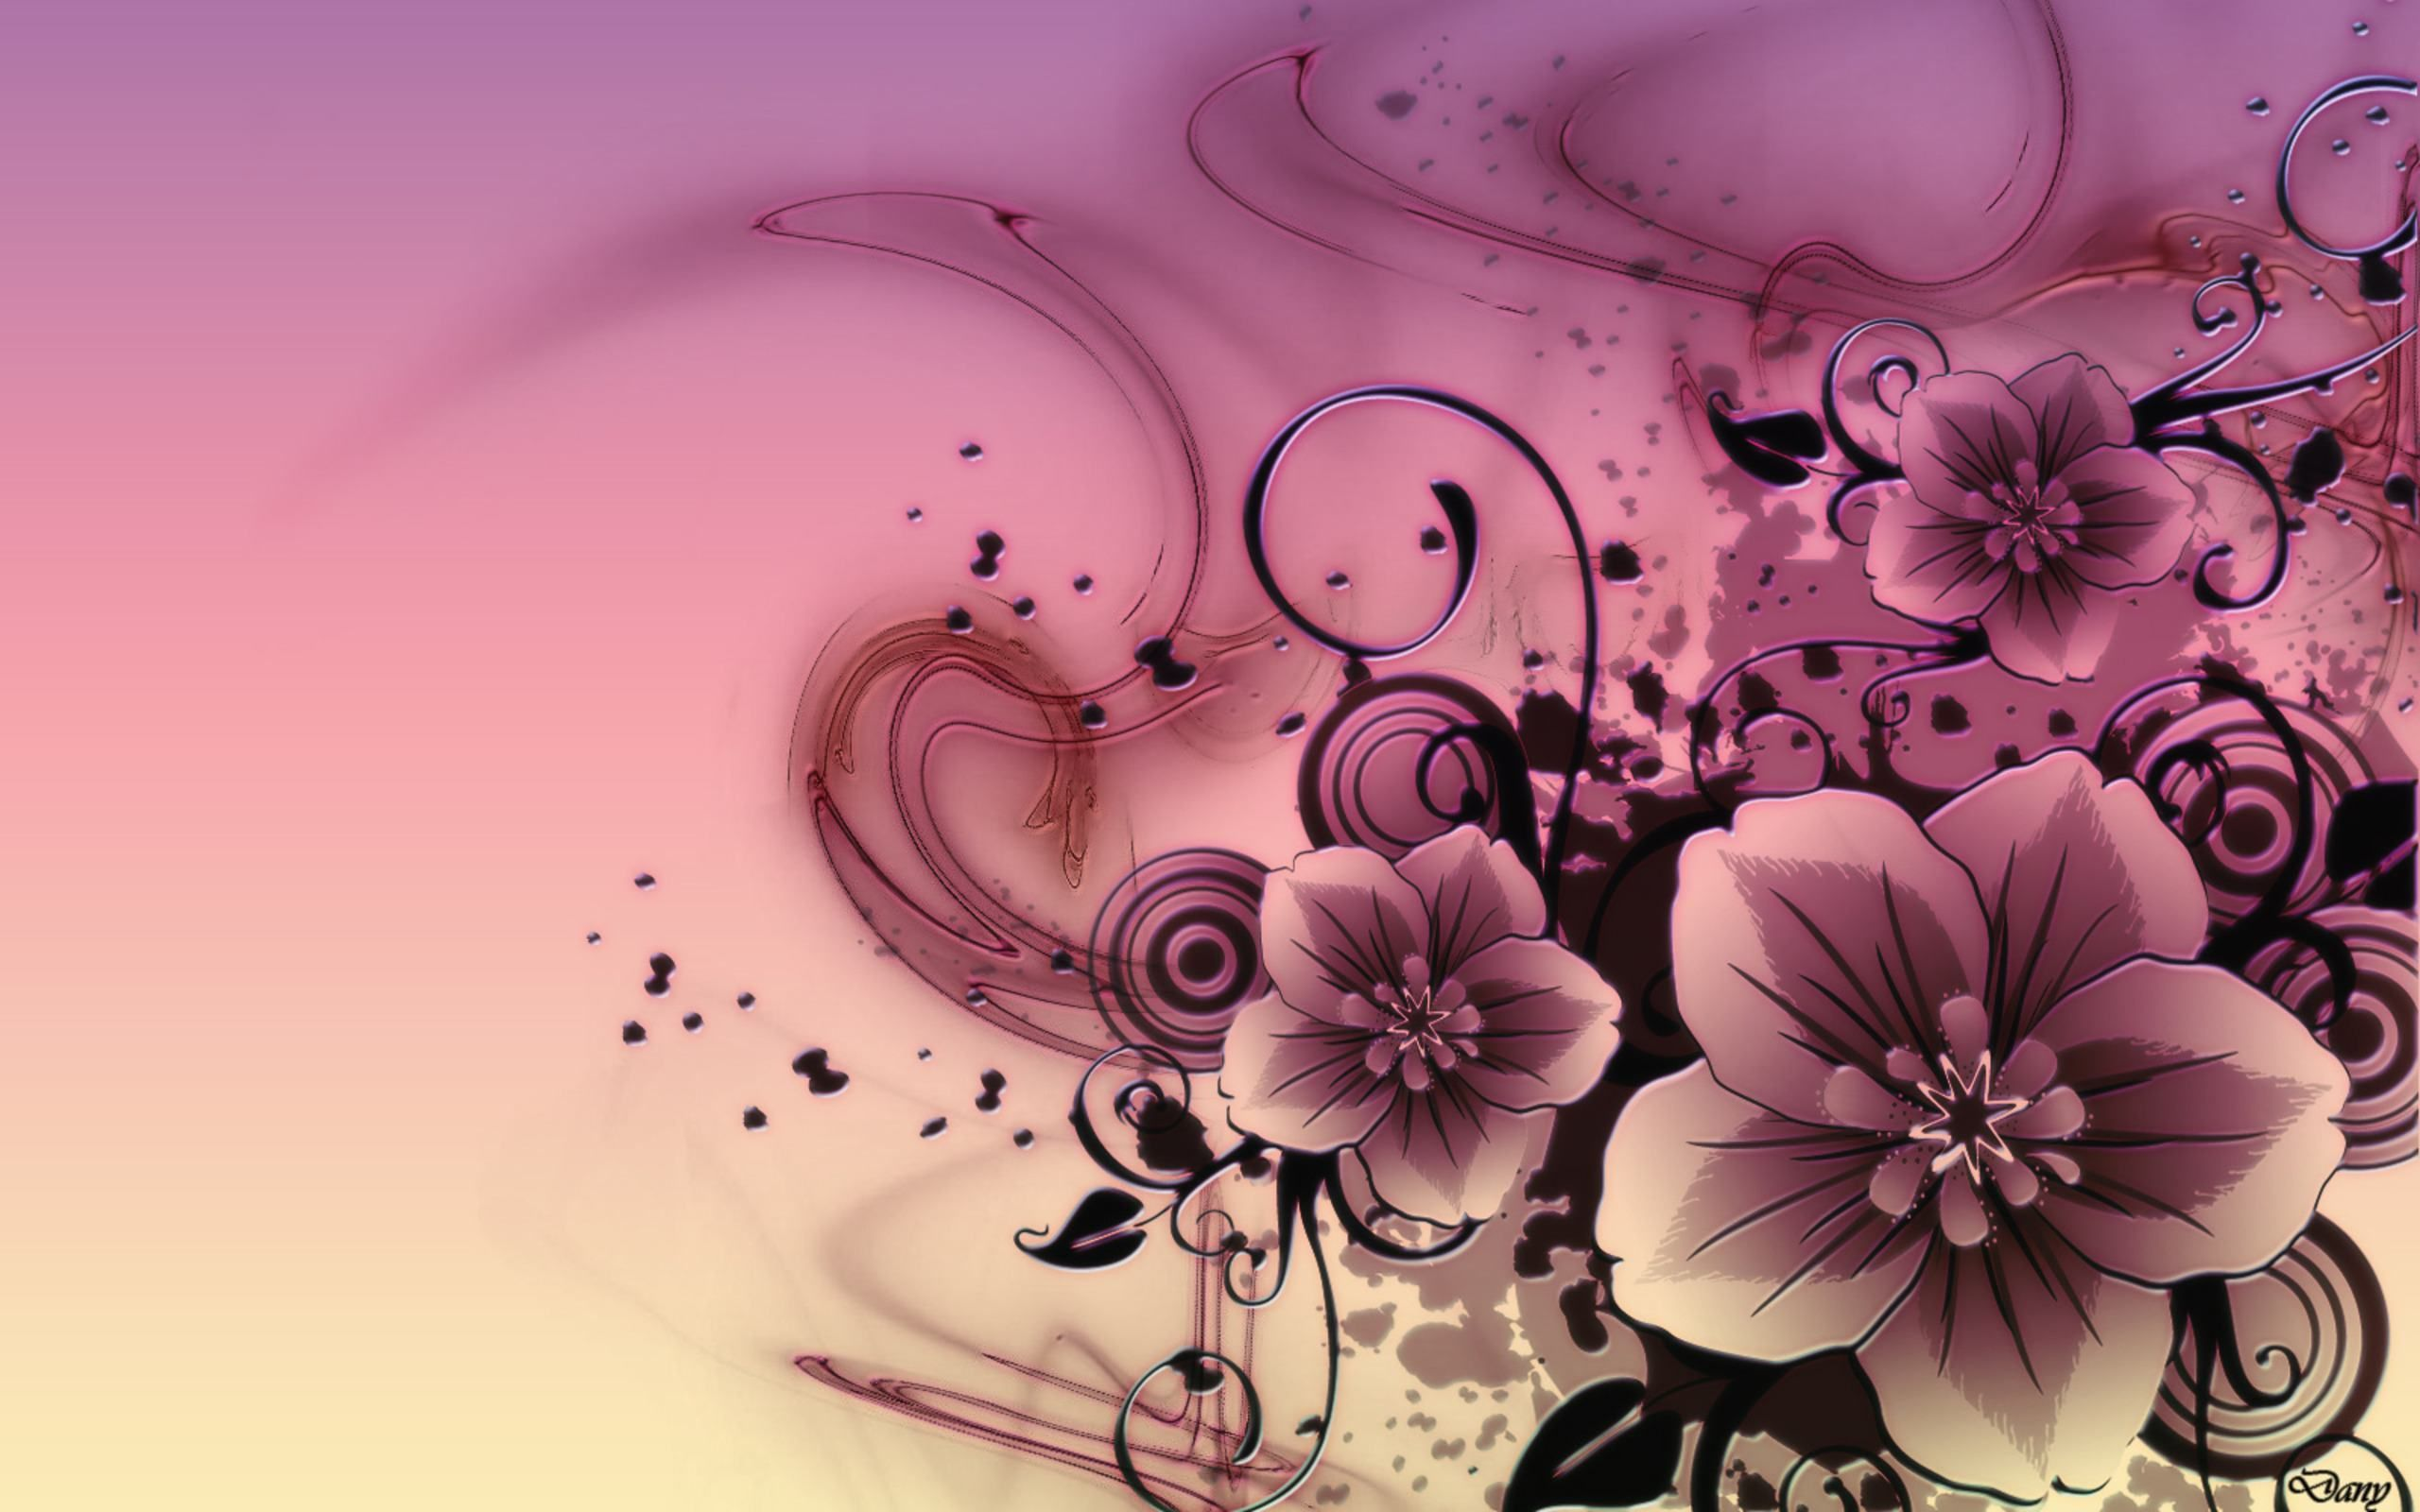 flowers wallpapers for desktop background full screen 7 | Hd ...